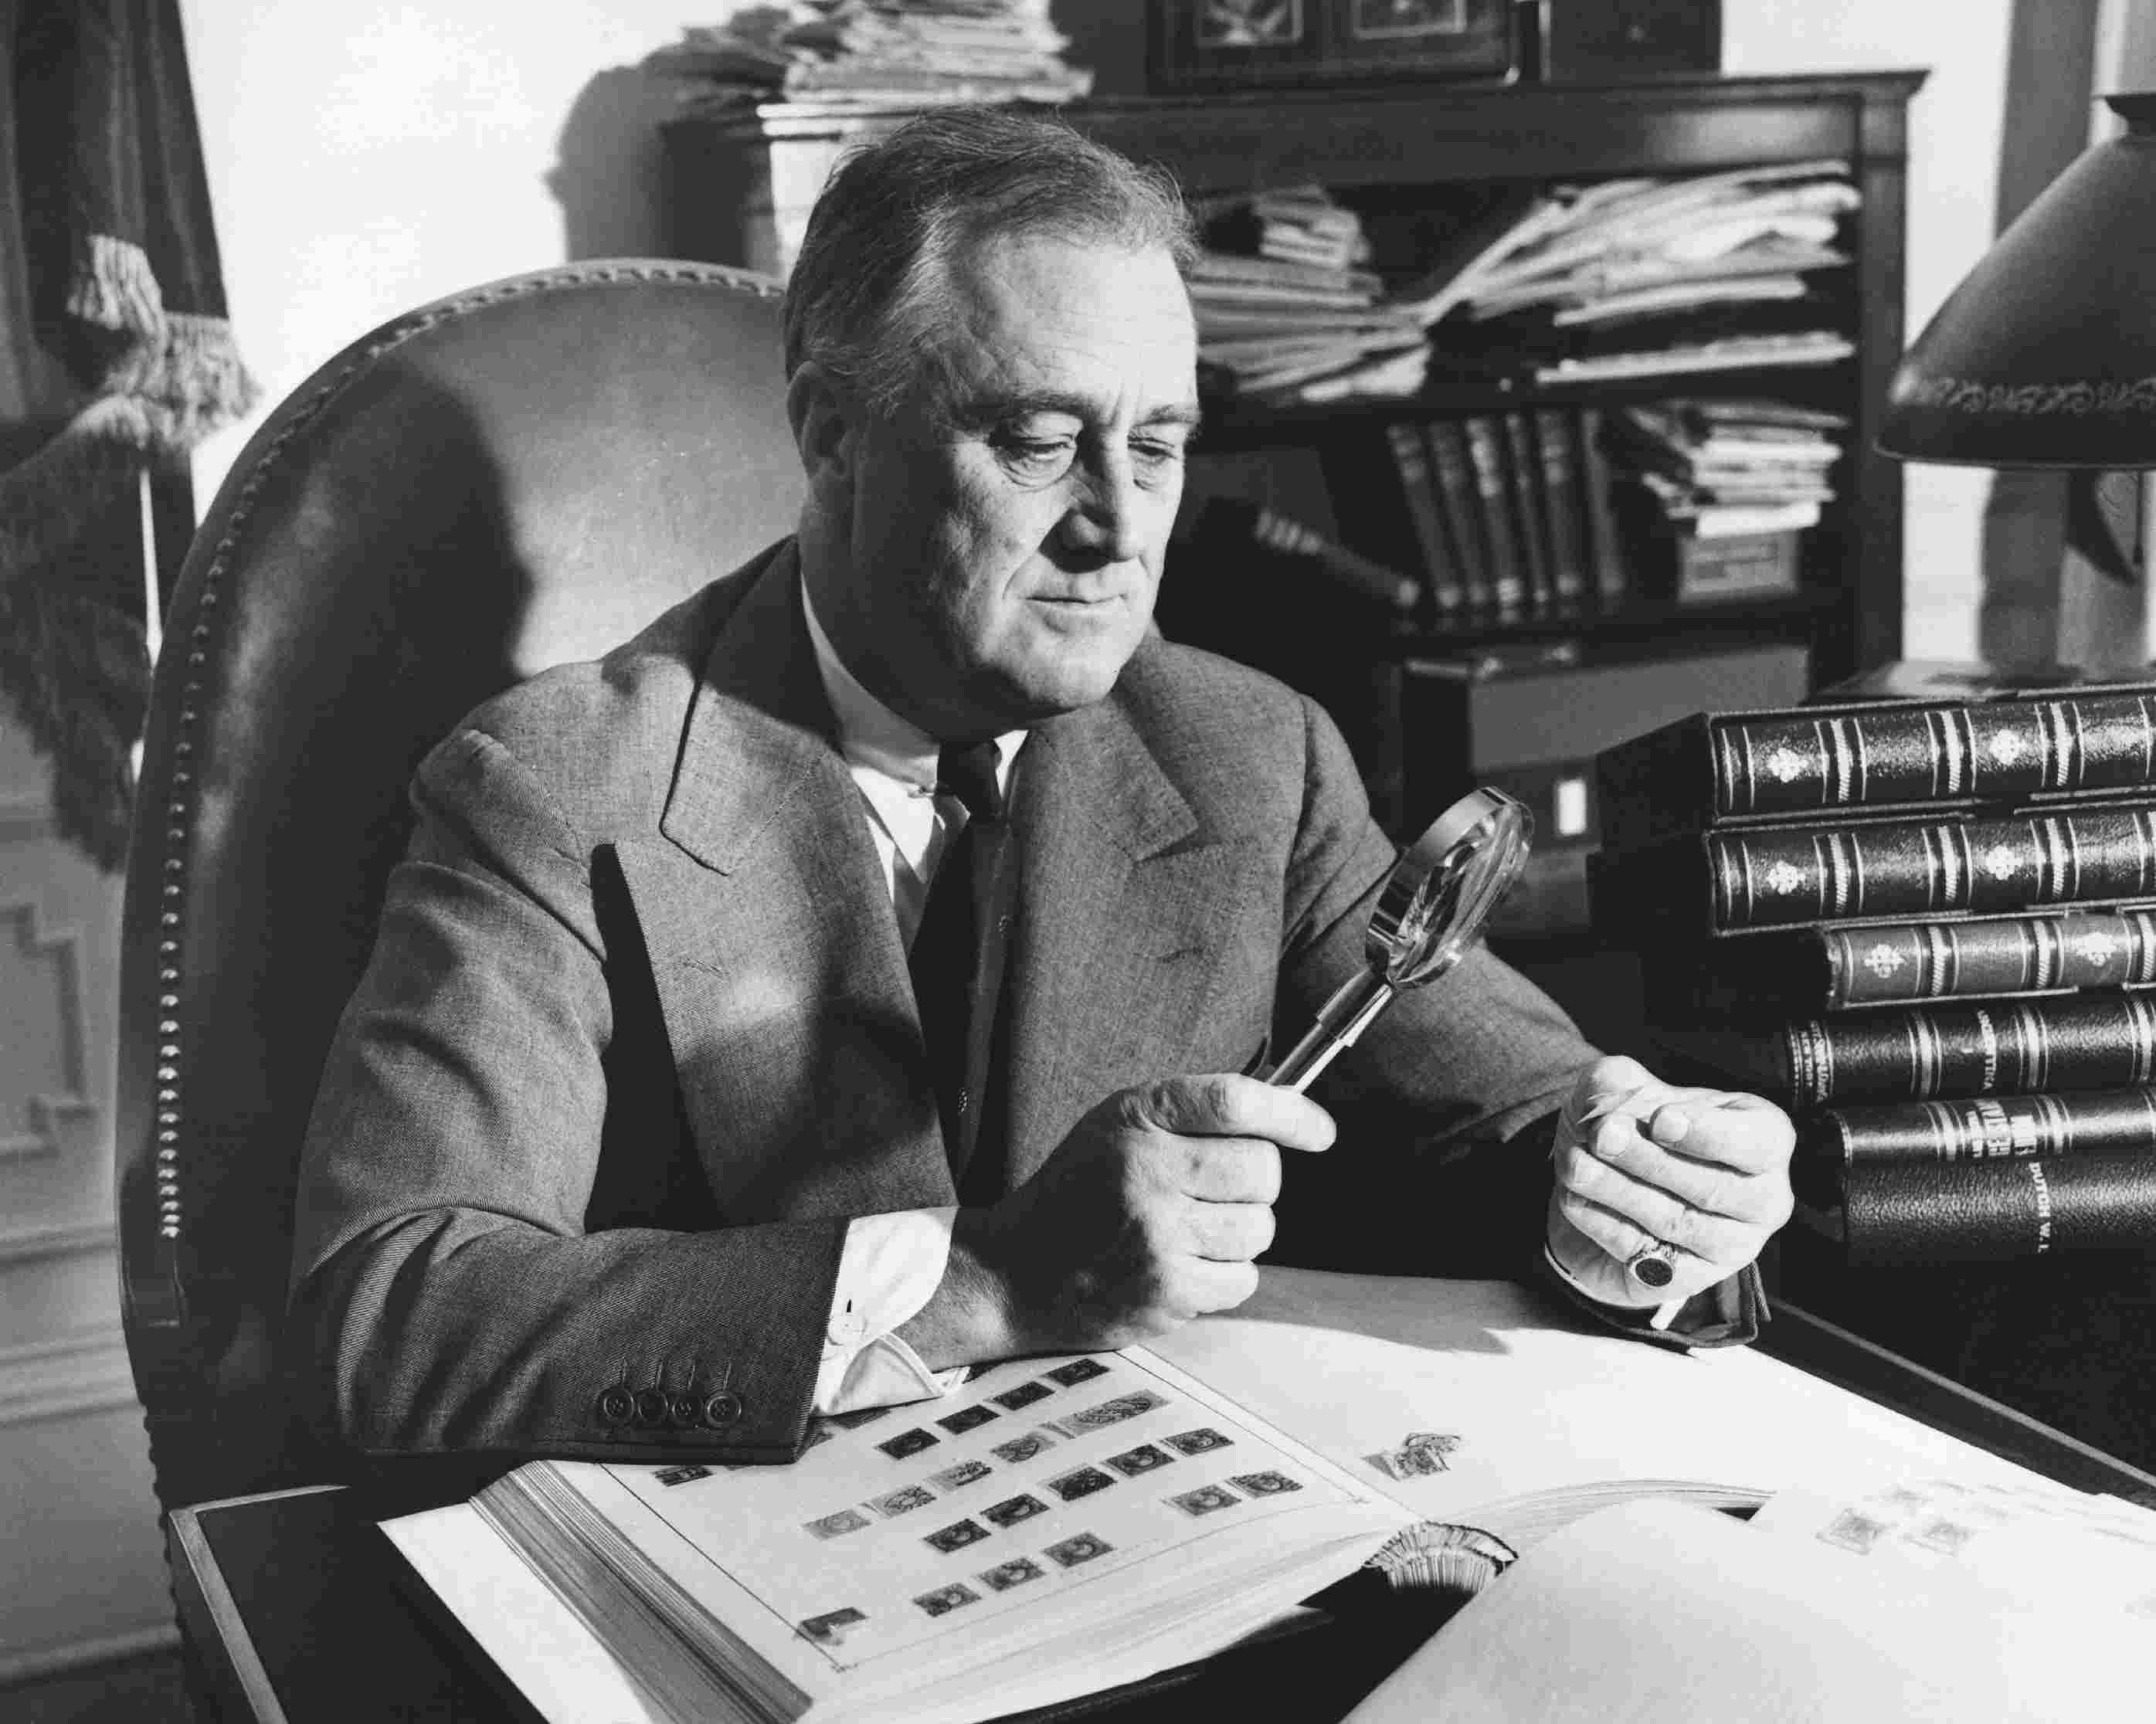 President Franklin Roosevelt looks at a stamp with a magnifying glass